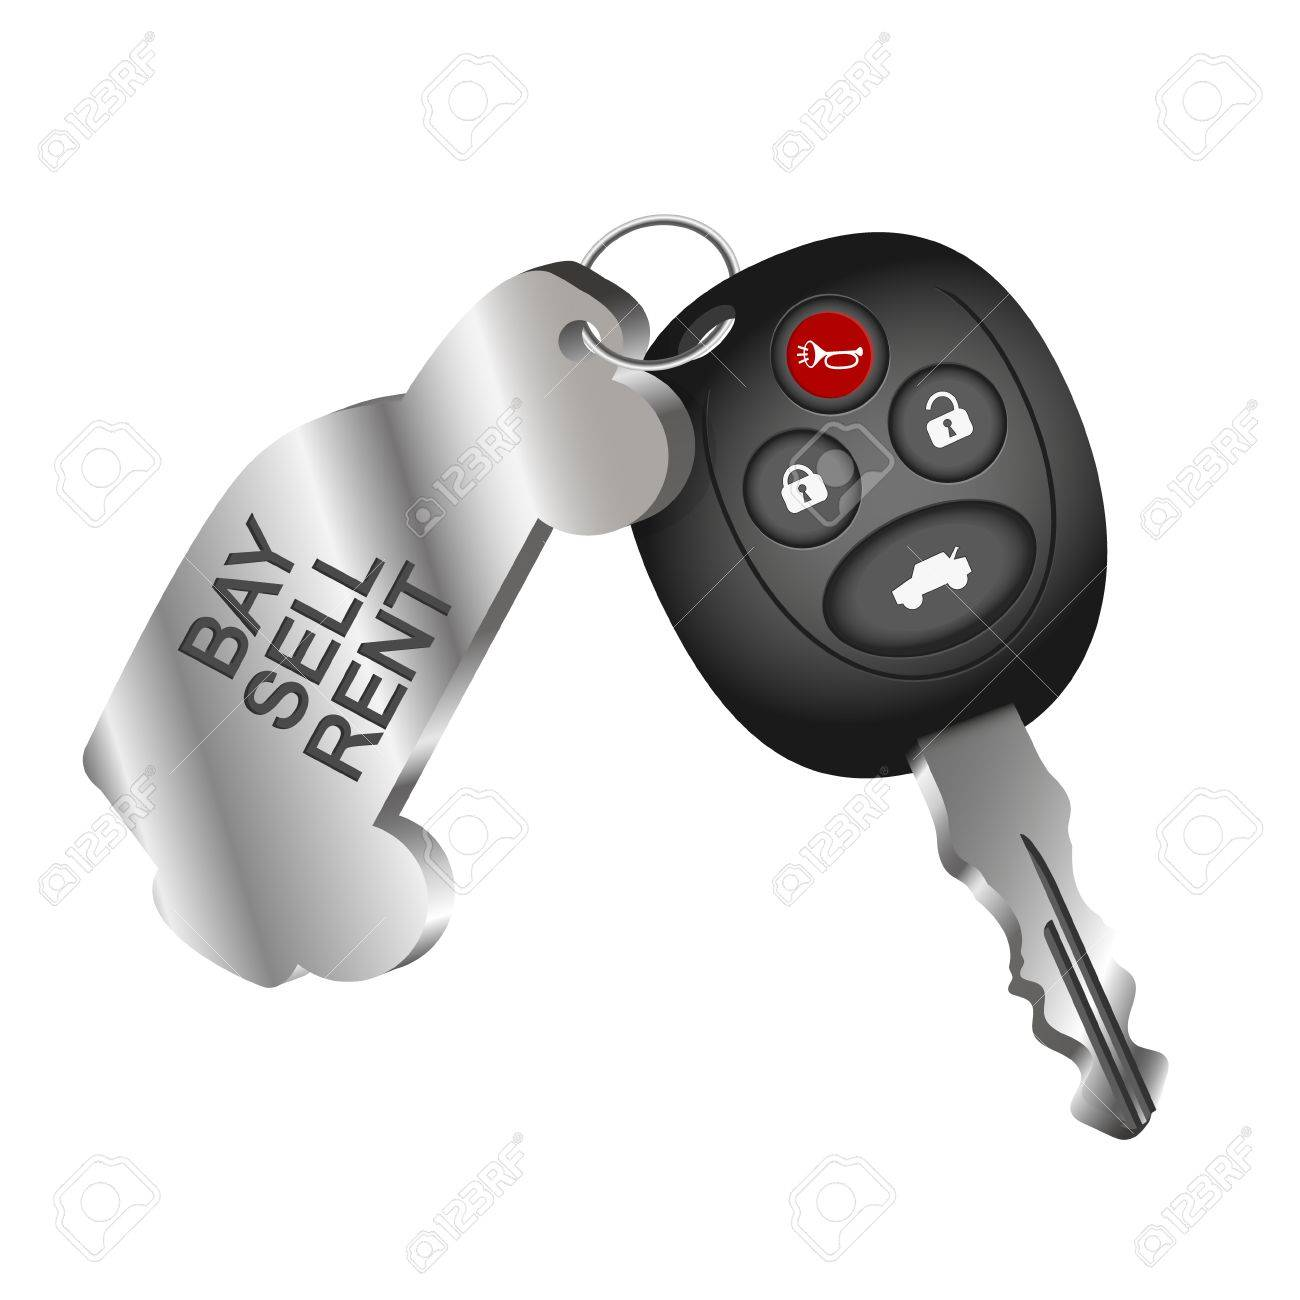 Car Key Symbol For Car Rental Sale And Purchase Of Cars Royalty